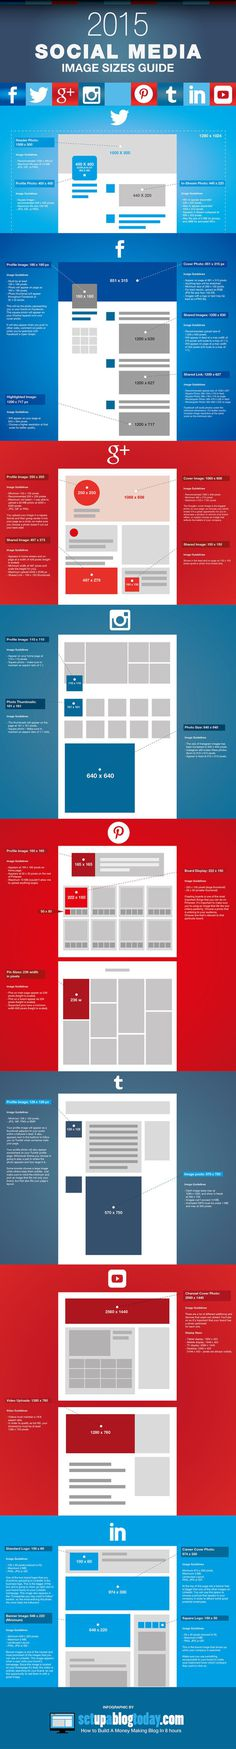 Social Media Image Sizes Guide for 2015 [Infographic]